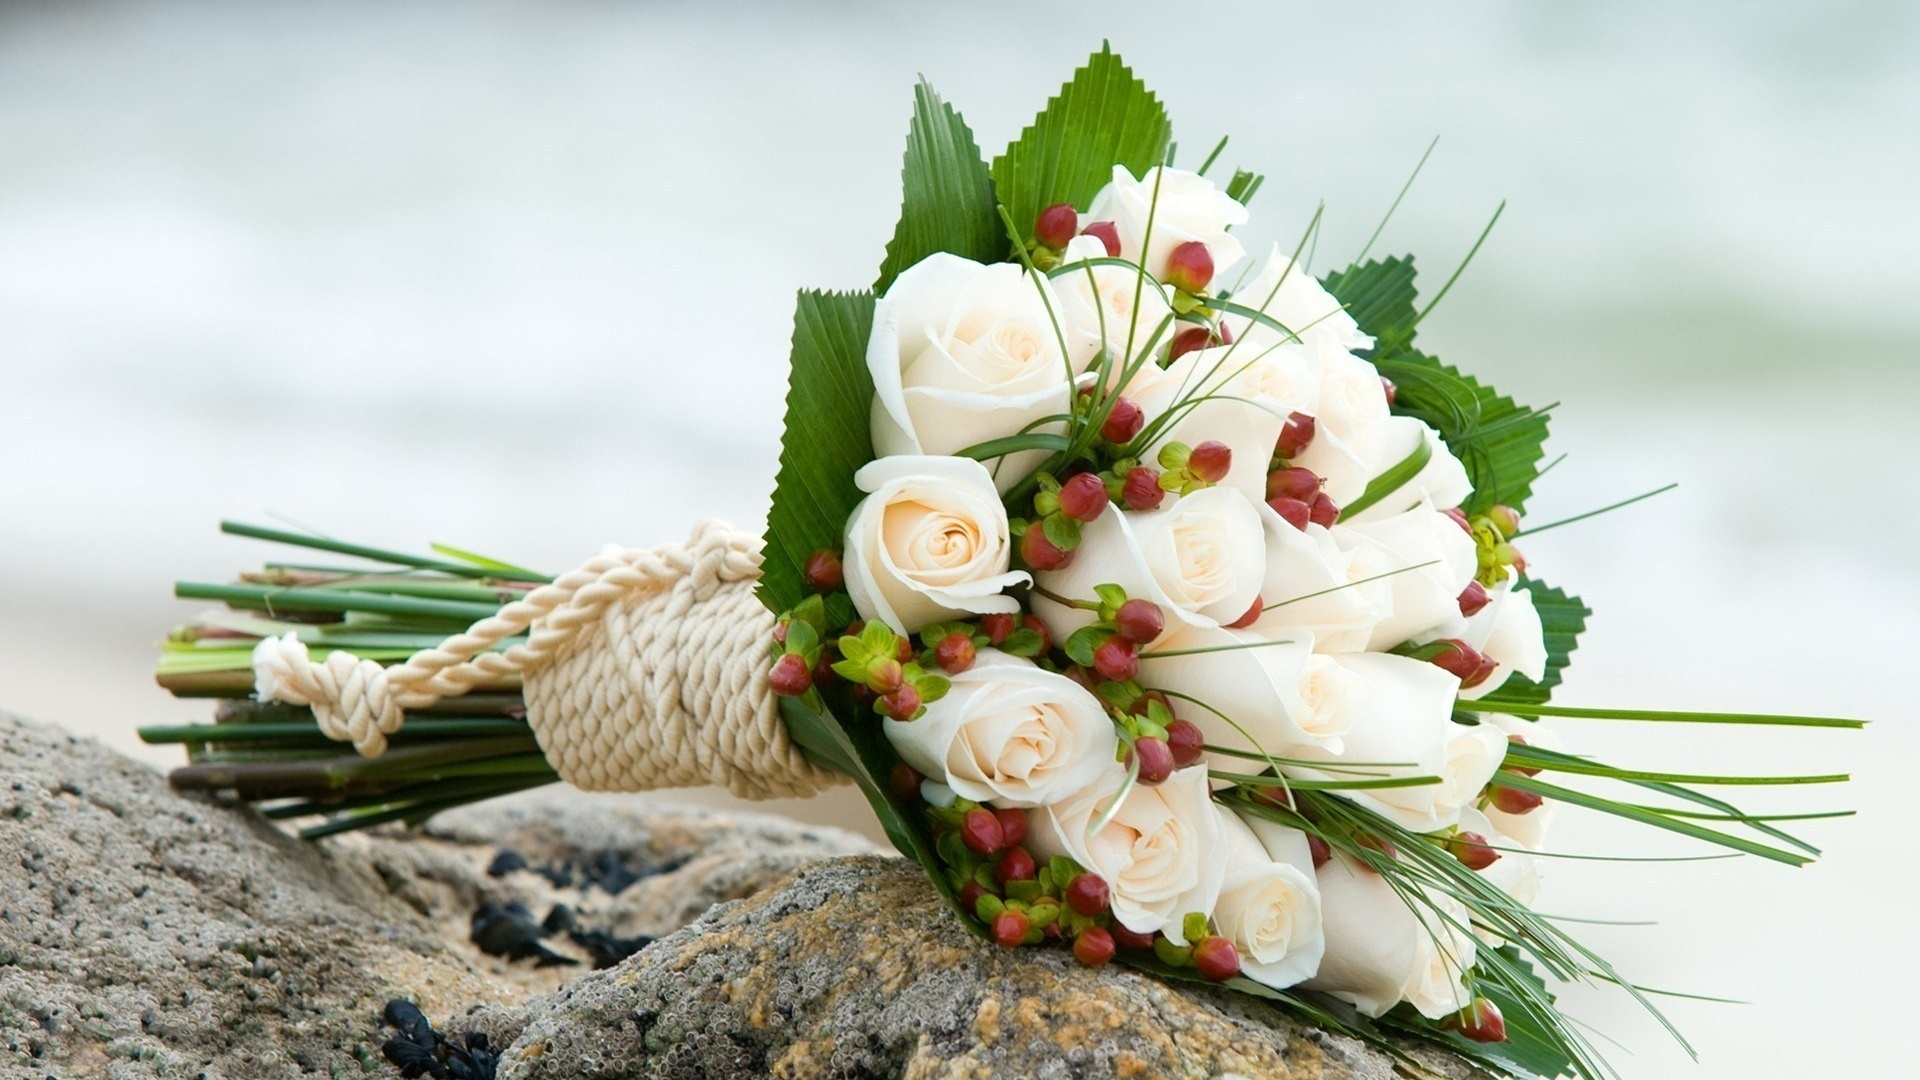 flower bouquets flower composition photo and wallpapers whether